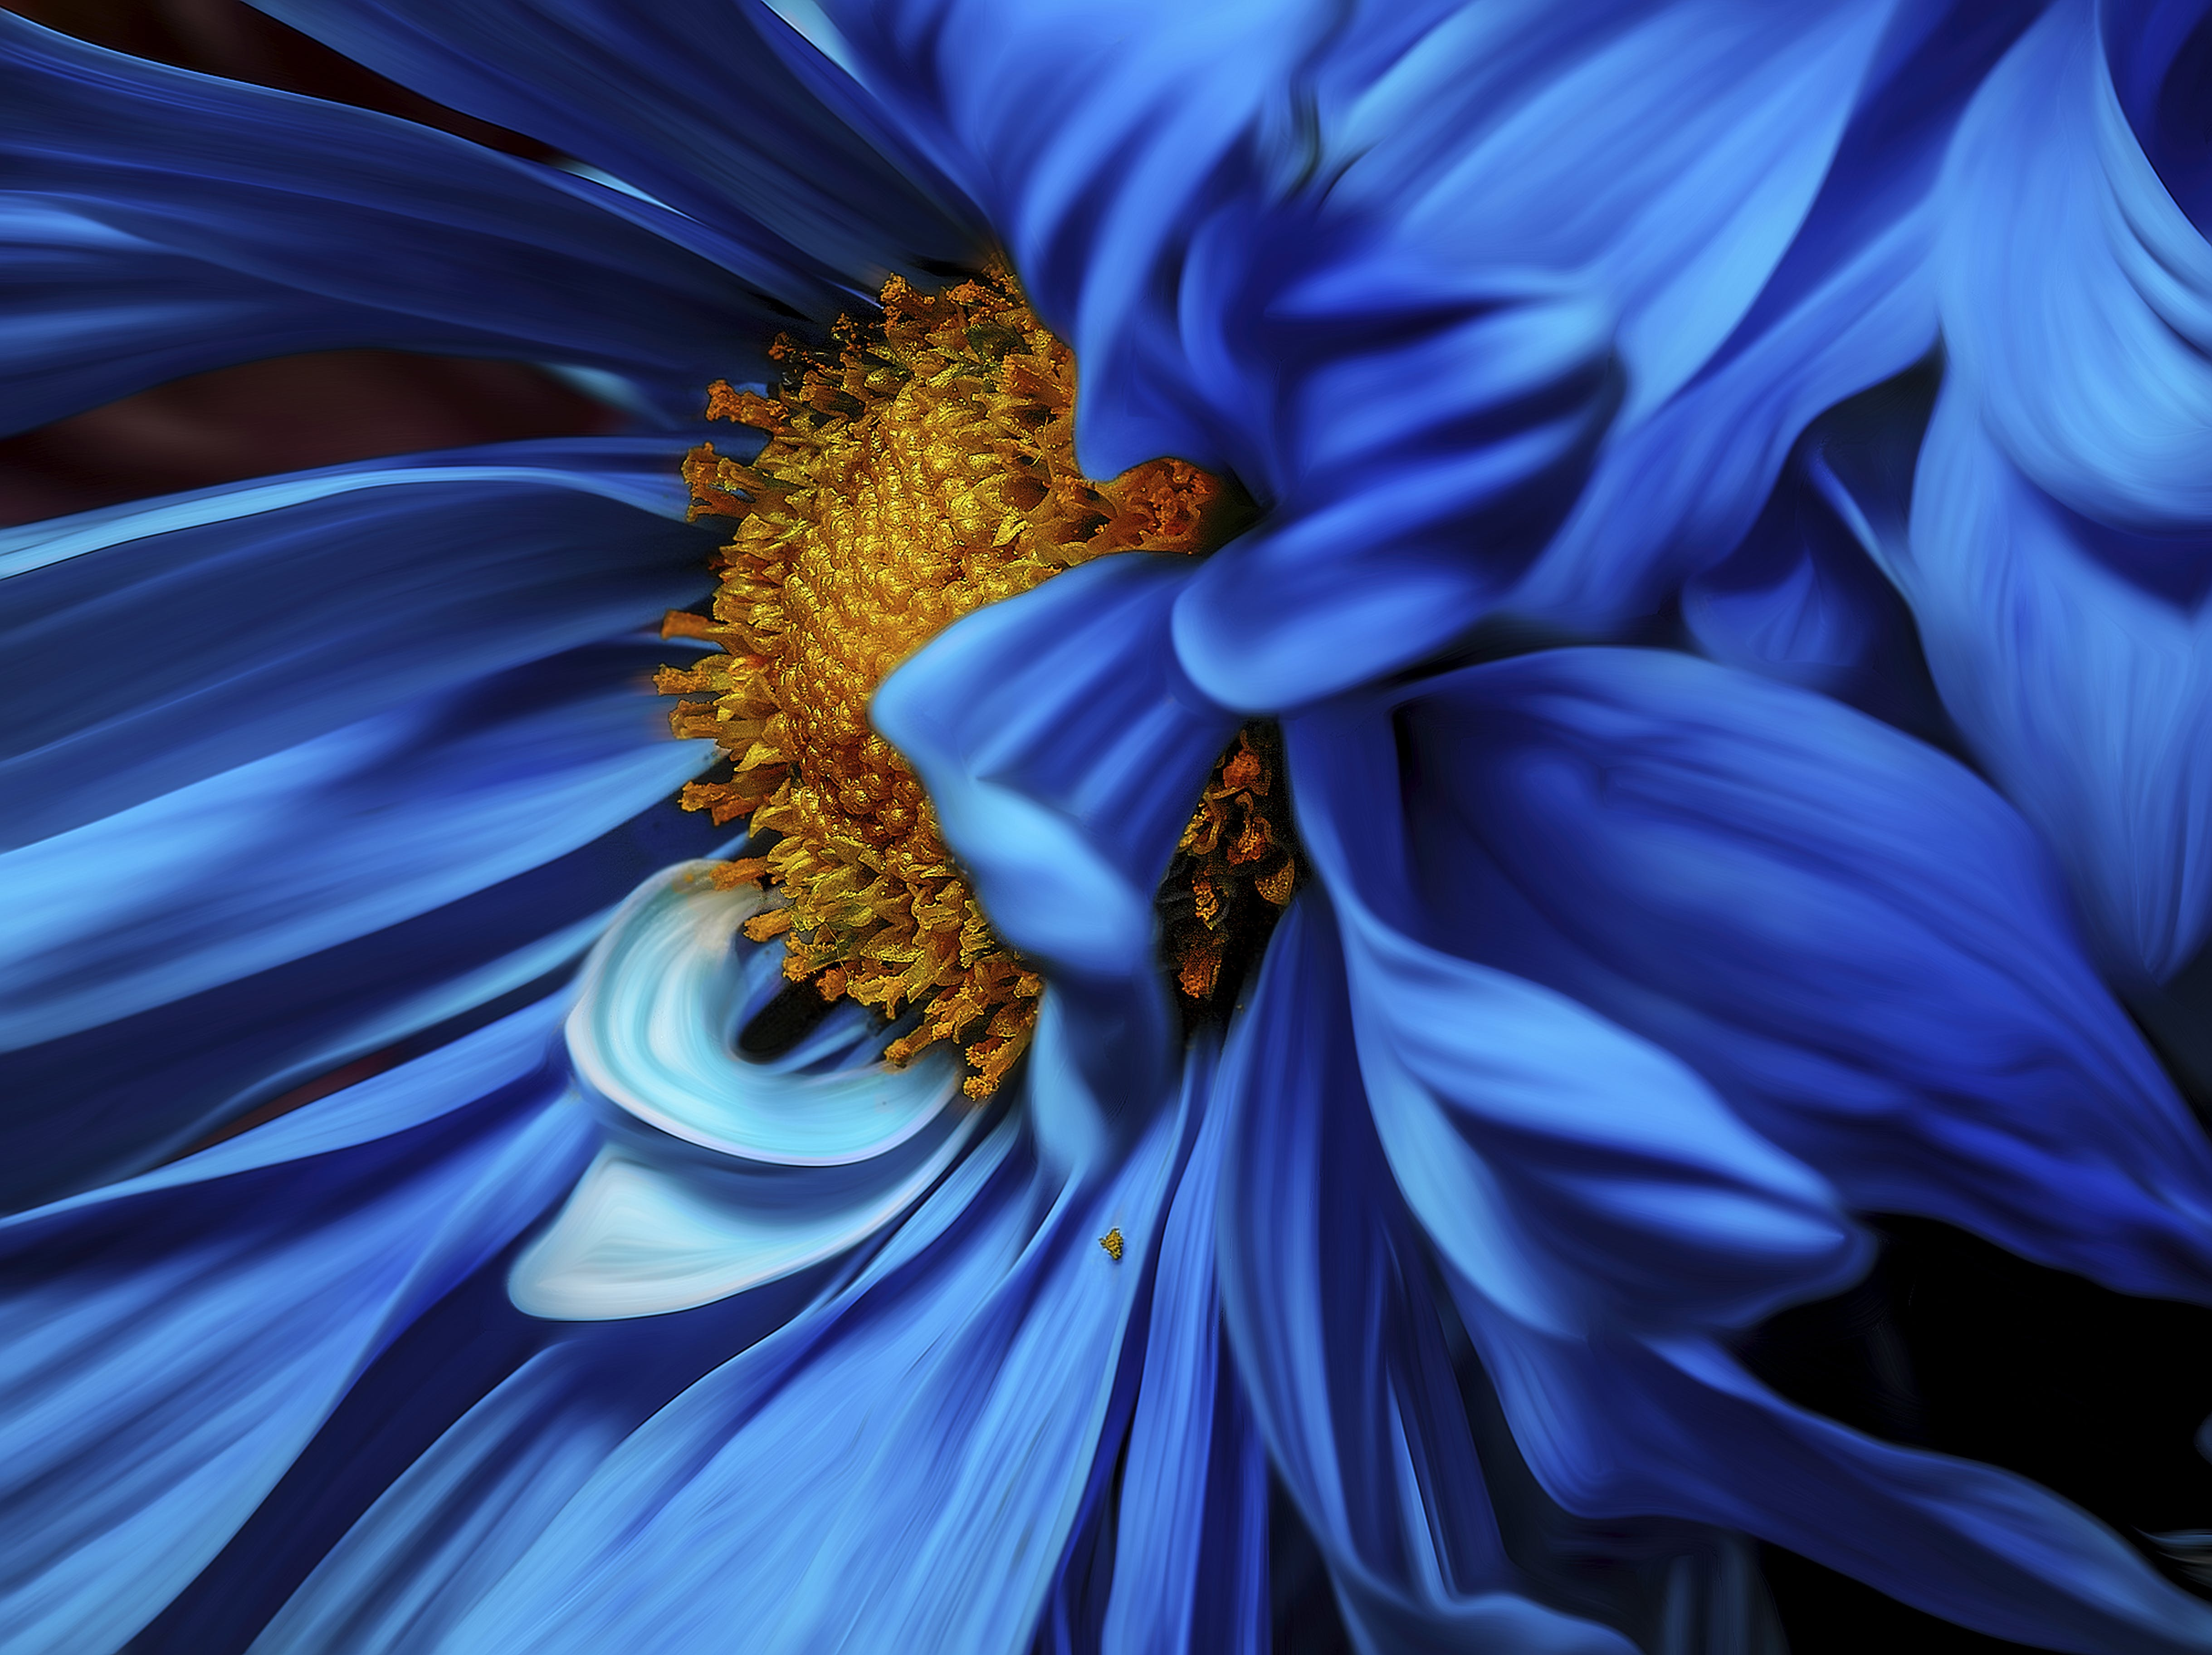 Micro Focus Photography of Blue and Orange Petaled Flower